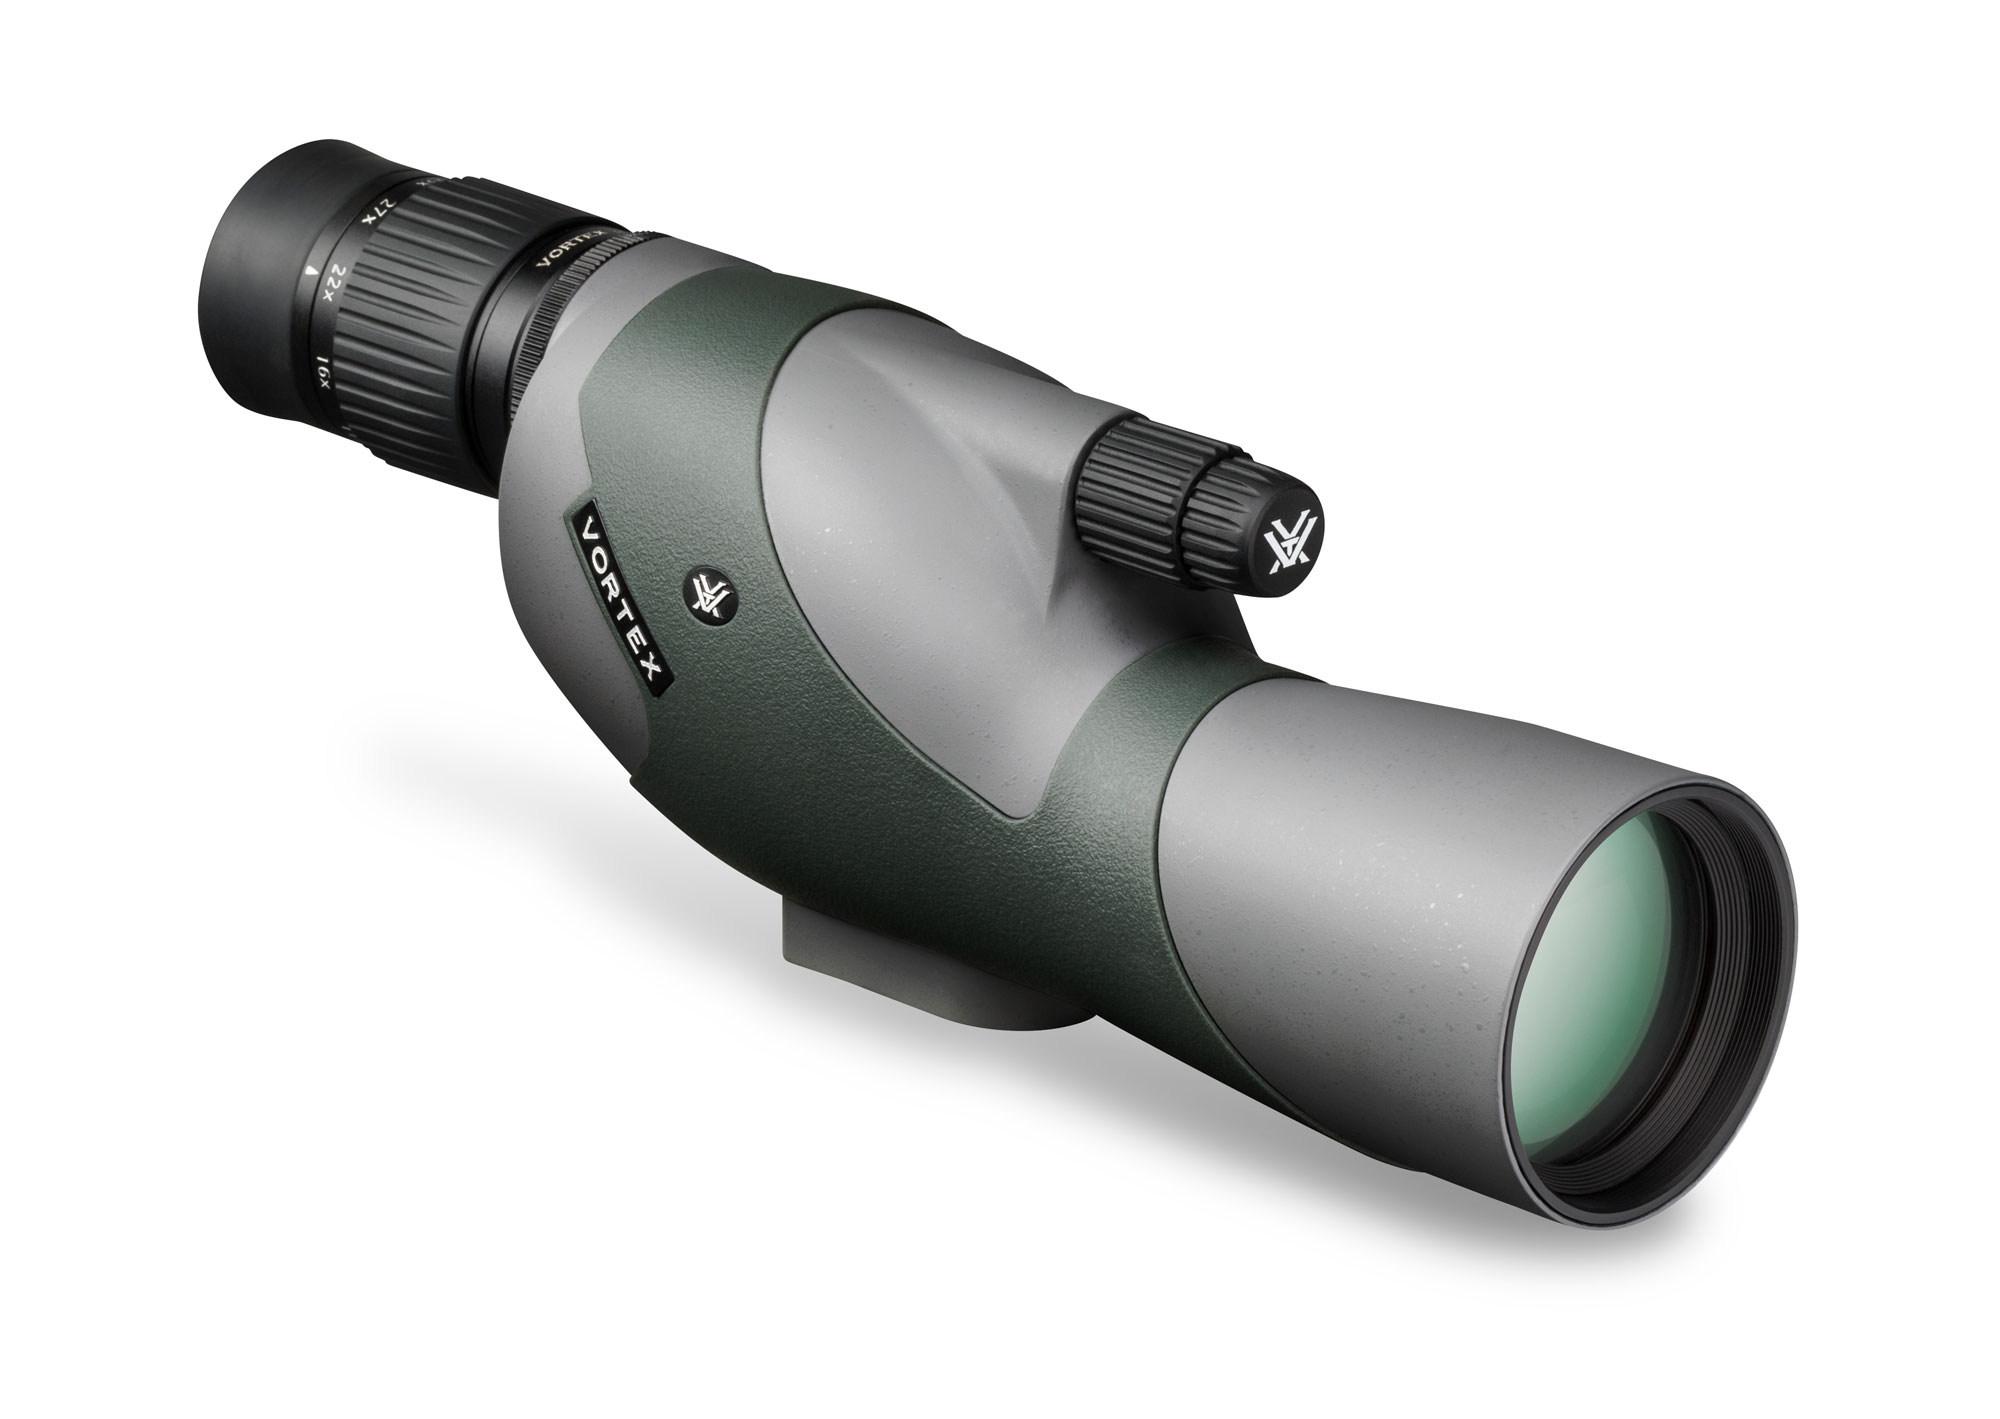 Vortex Optics Razor HD 11-33x50 Straight Spotting Scope